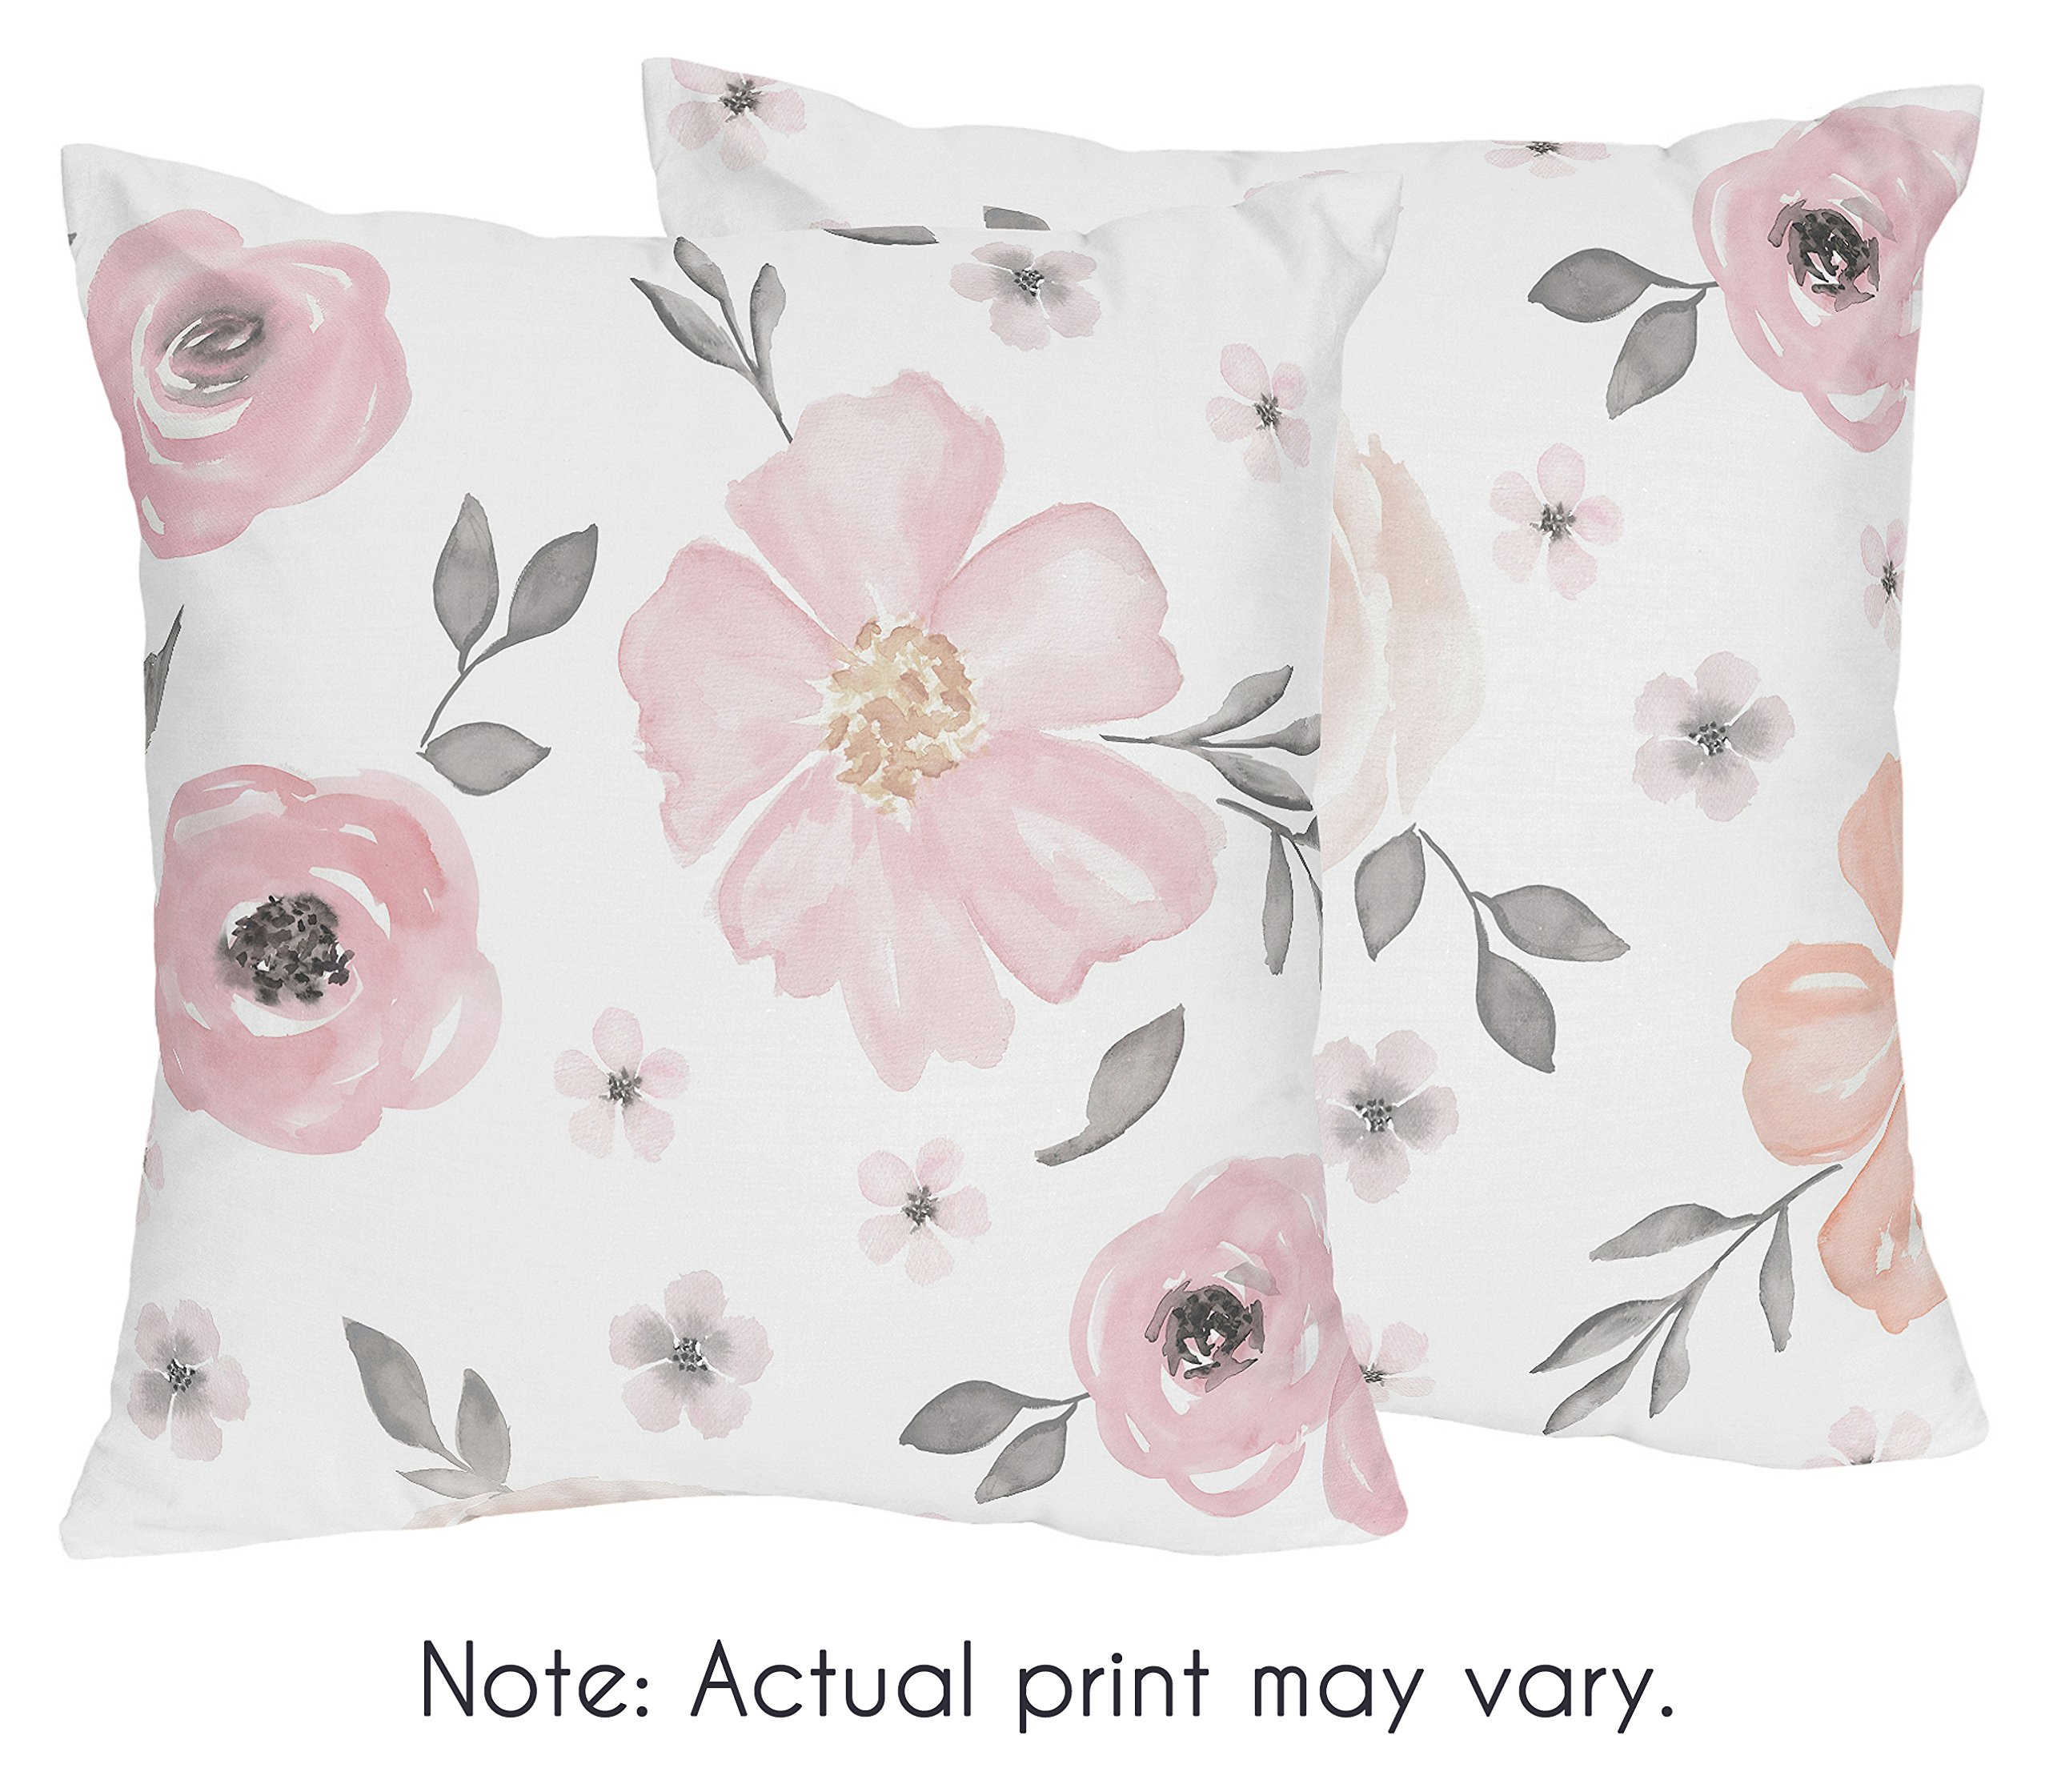 Sweet JoJo Designs 2-Piece Blush Pink, Grey and White Decorative Accent Throw Pillows for Watercolor Floral Collection by